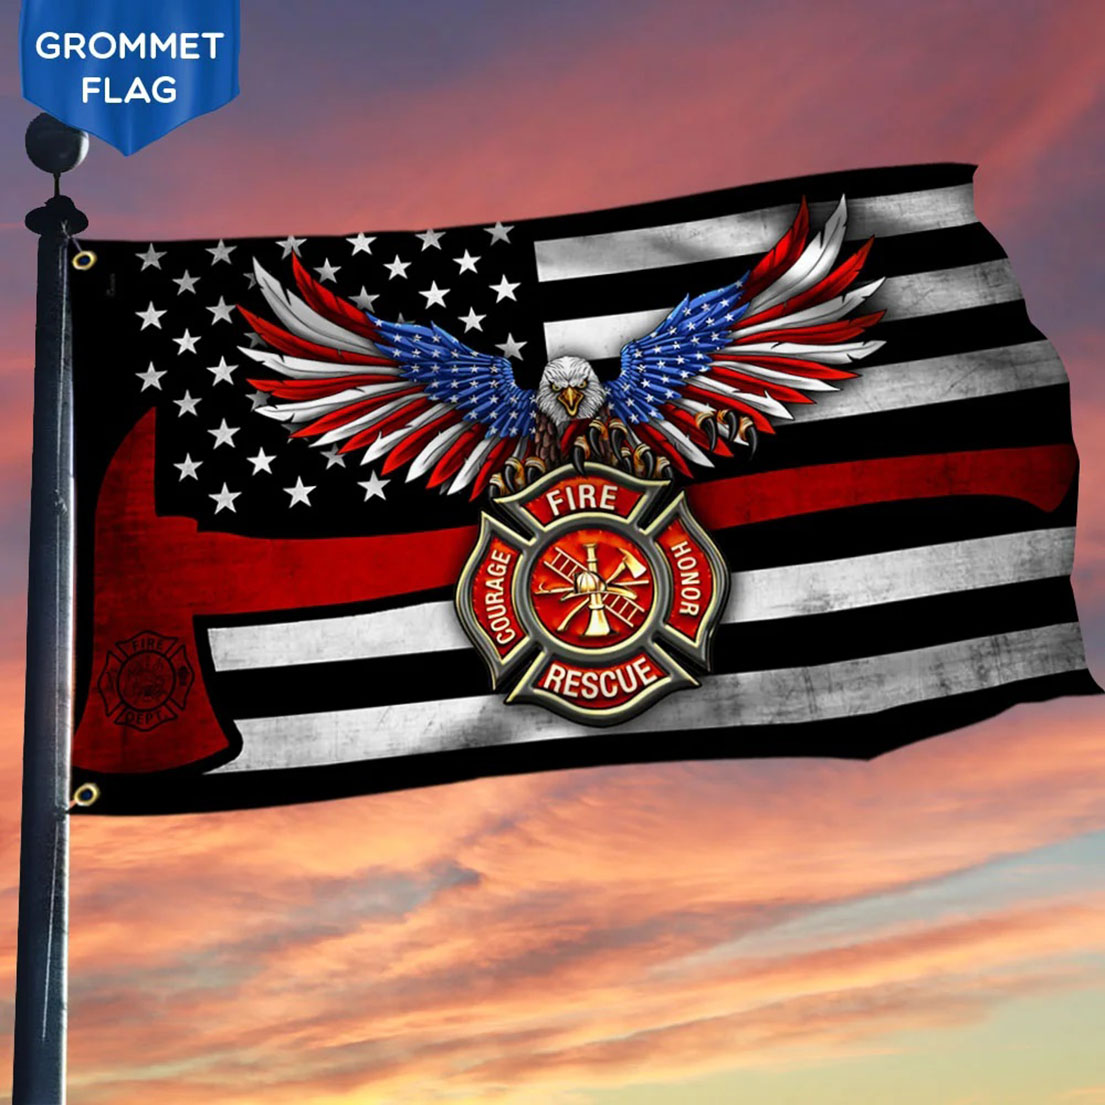 Eagle Firefighter Grommet The Thin Red Line Flag